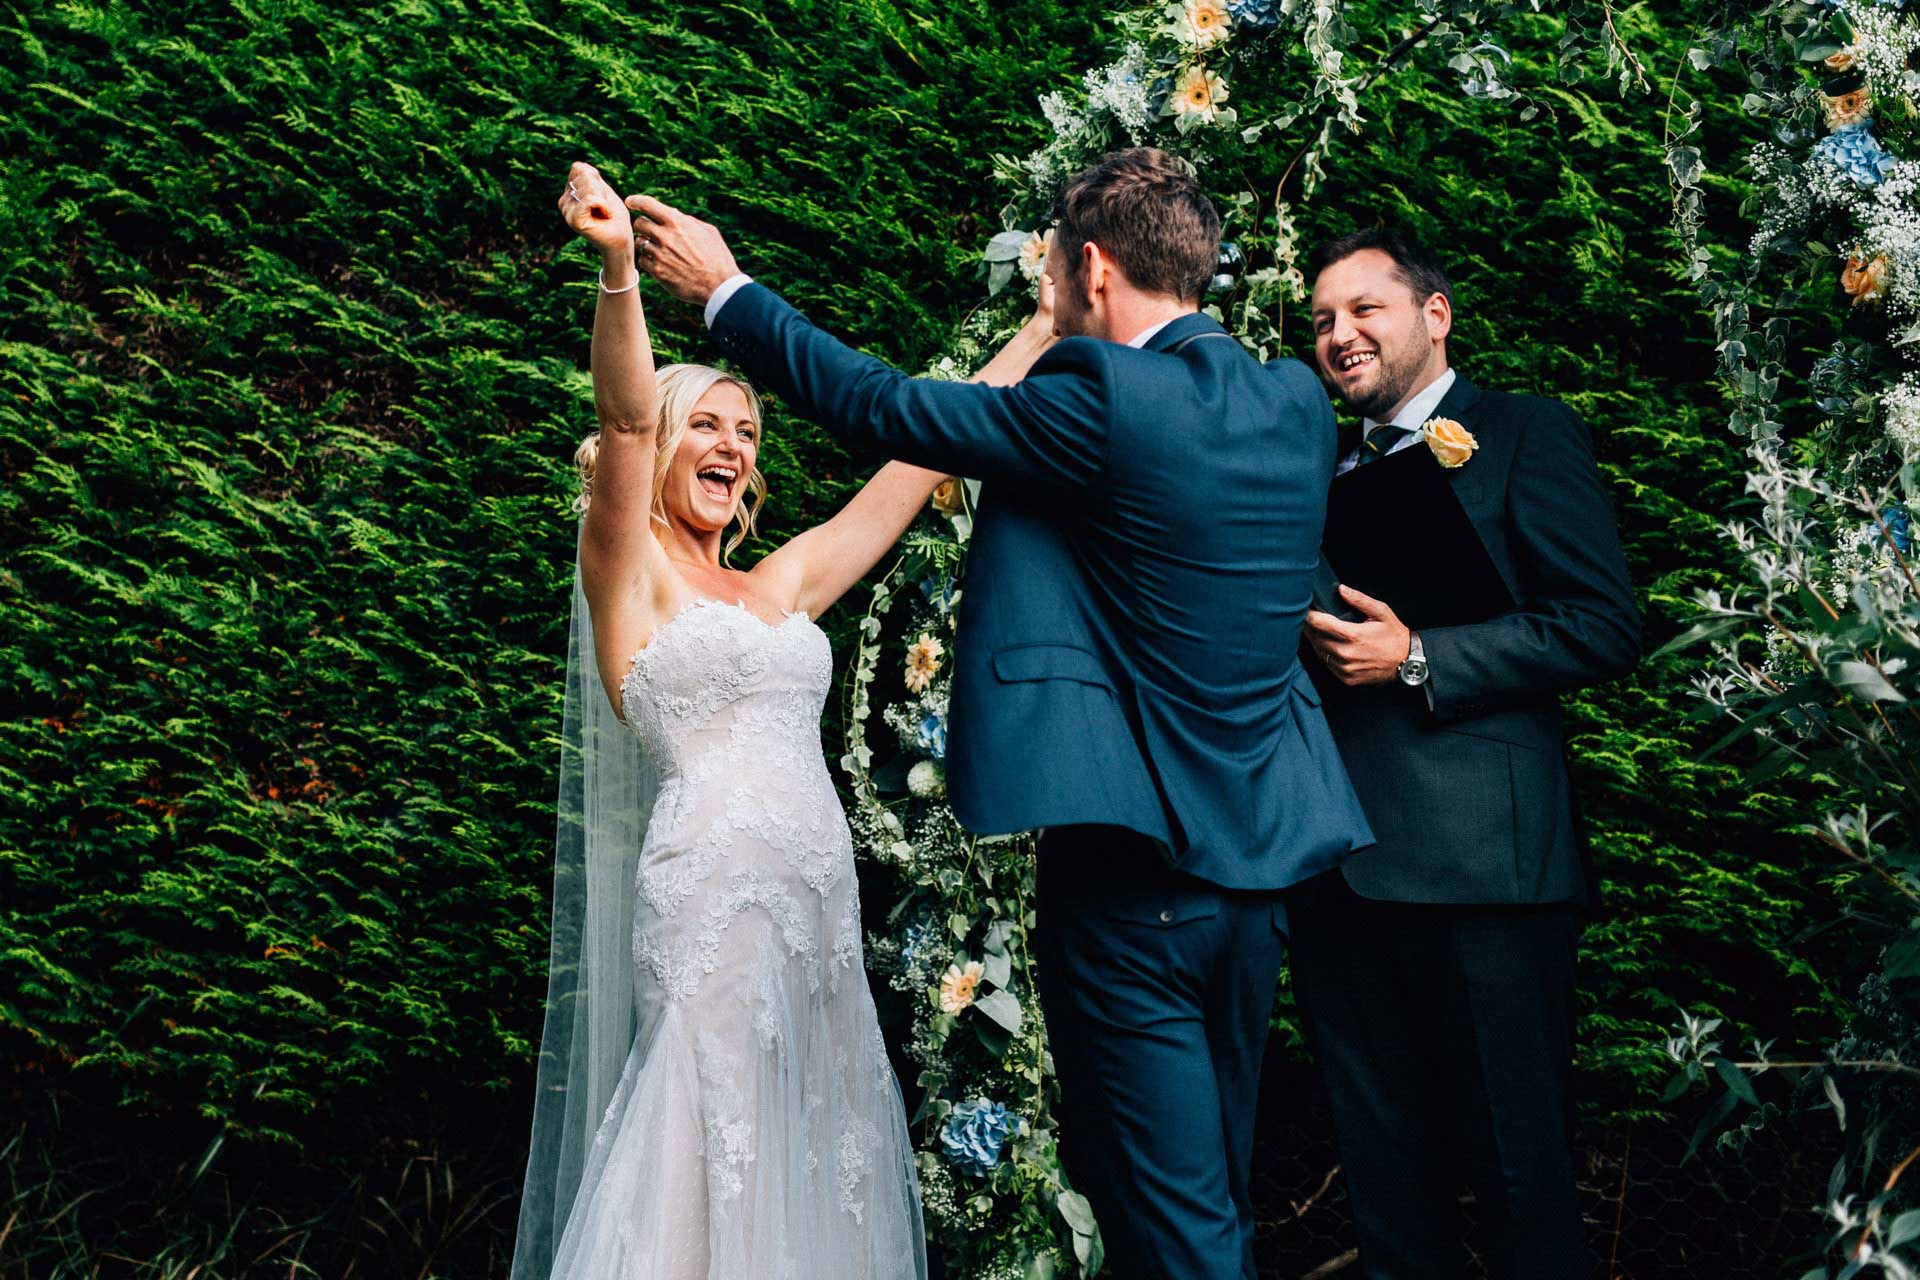 Best wedding photography 2016 - bride and from at end of ceremony